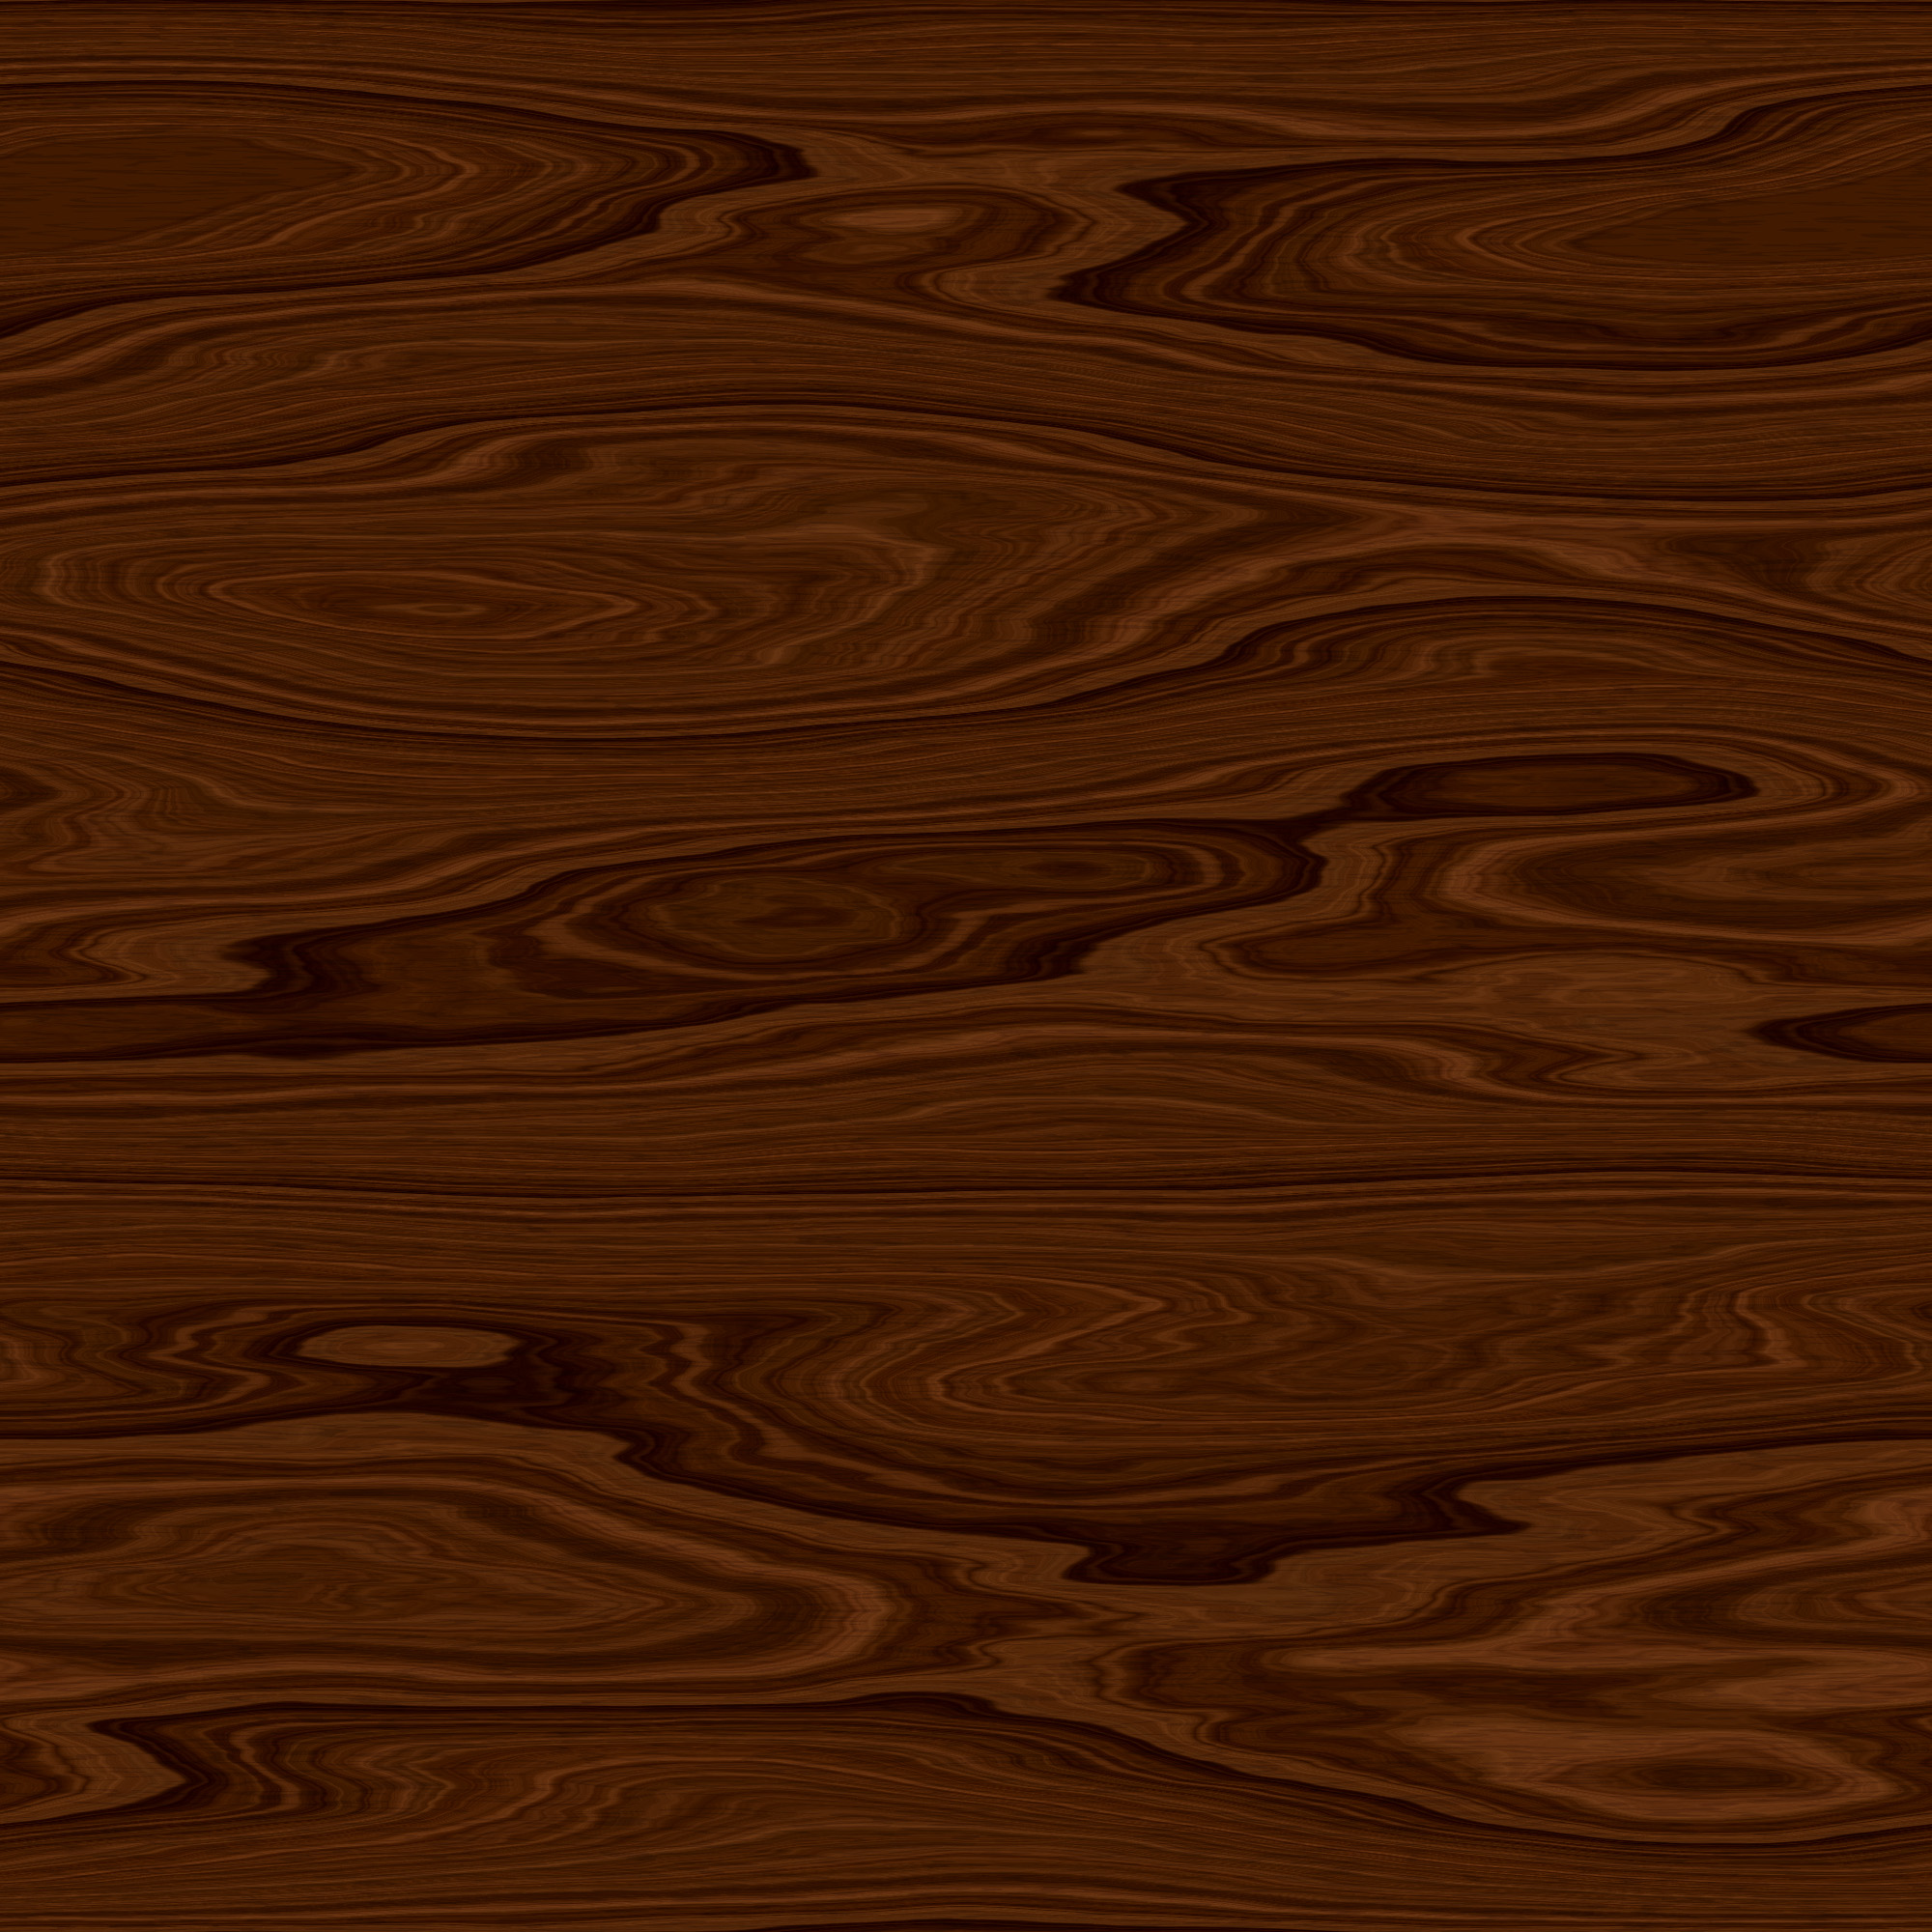 Dark Wood clipart creepy forest Angled seamless wood wood www